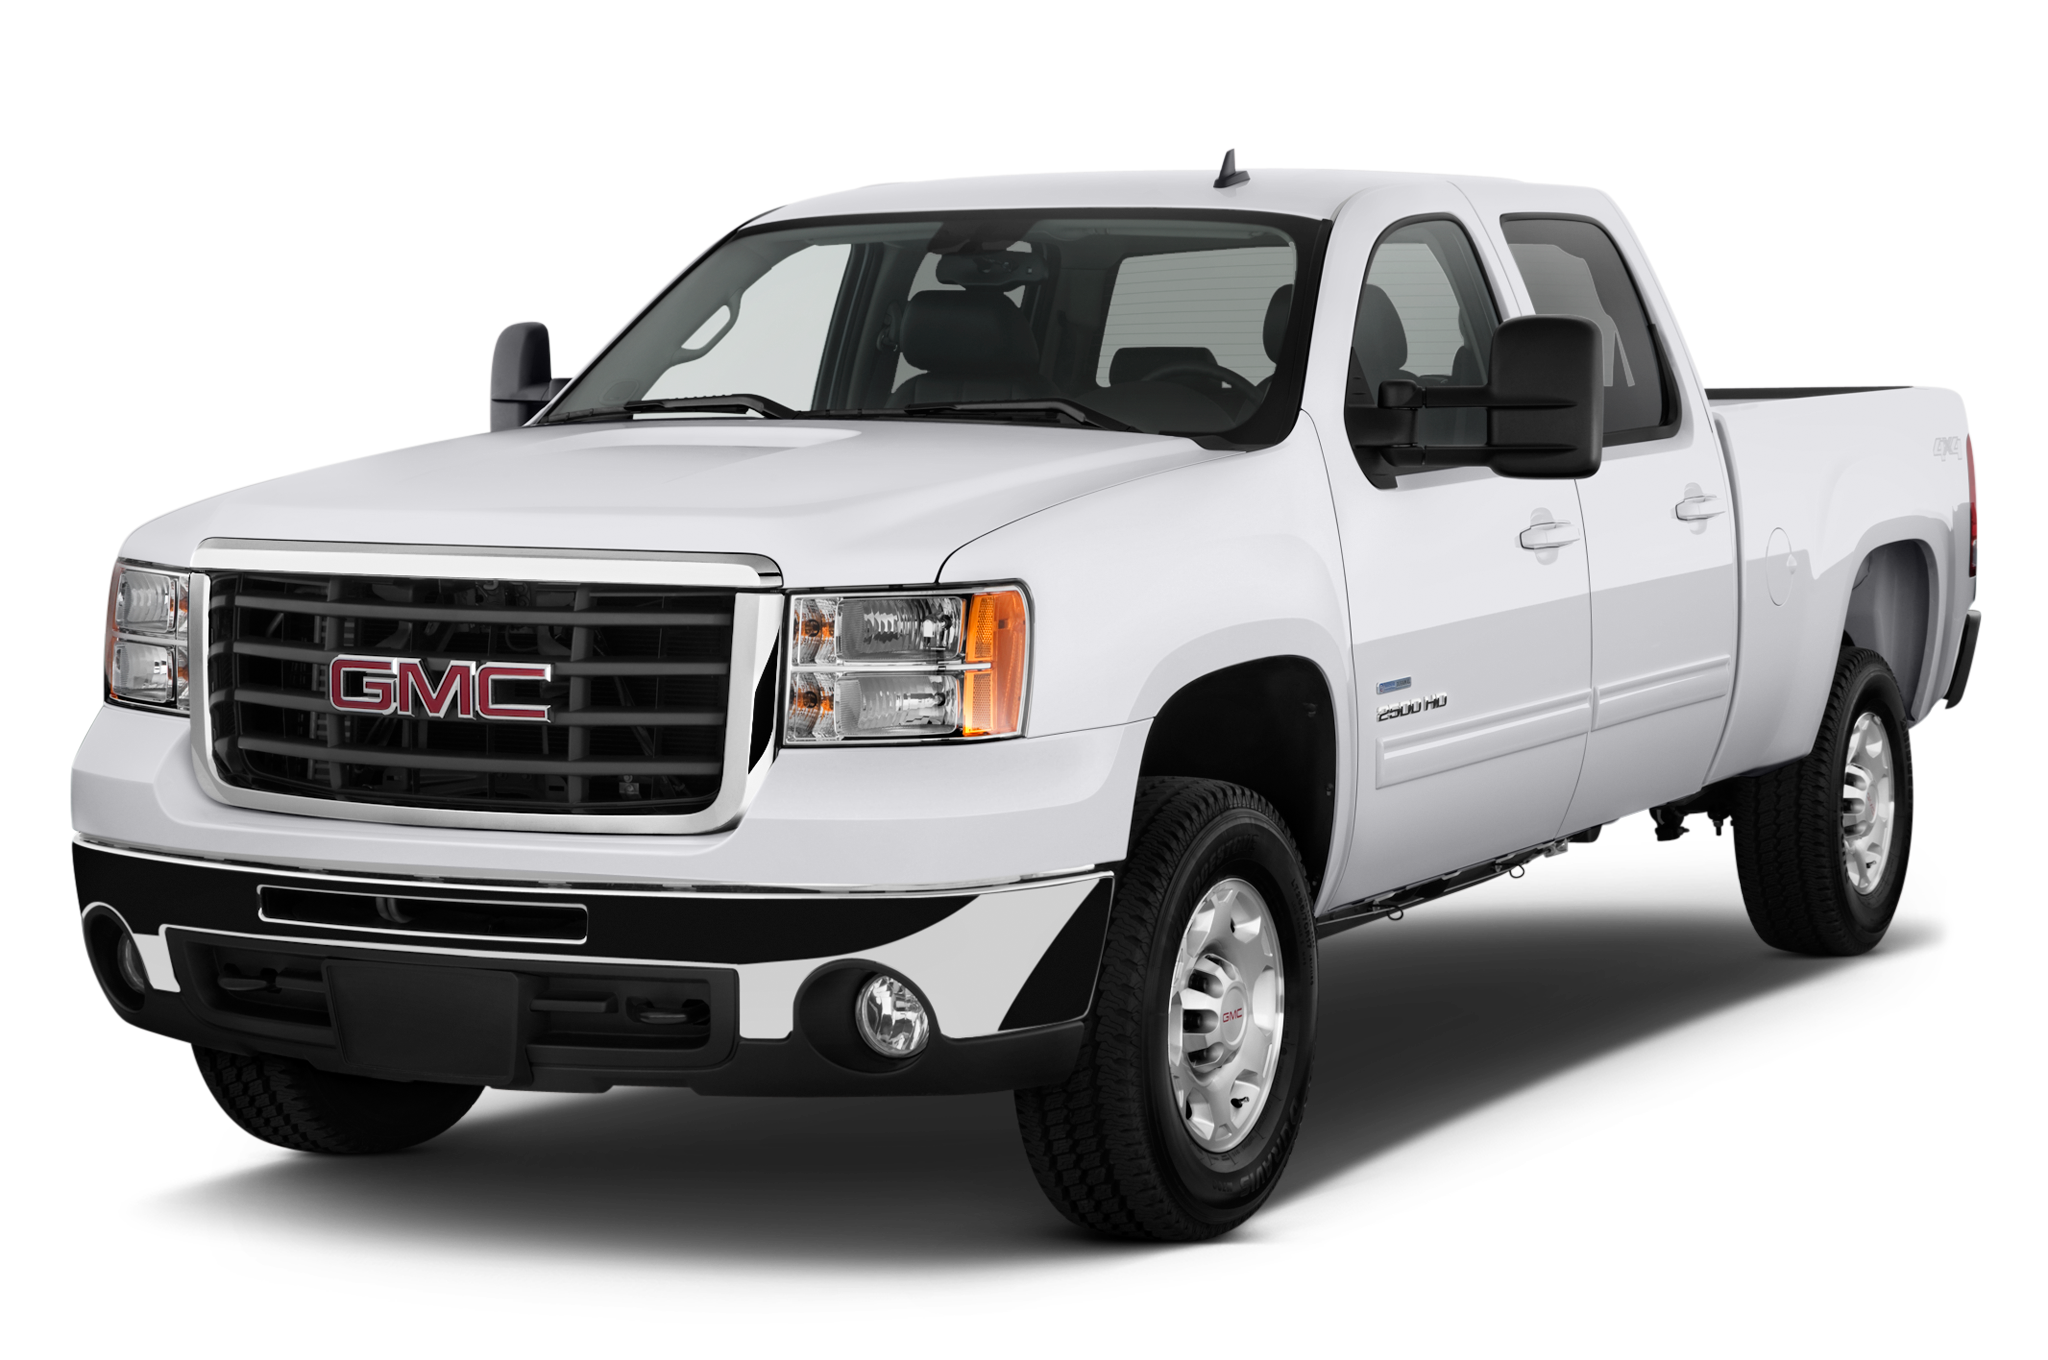 2013 gmc sierra 1500 hybrid crew cab hybrid 4wd prices autos post. Black Bedroom Furniture Sets. Home Design Ideas